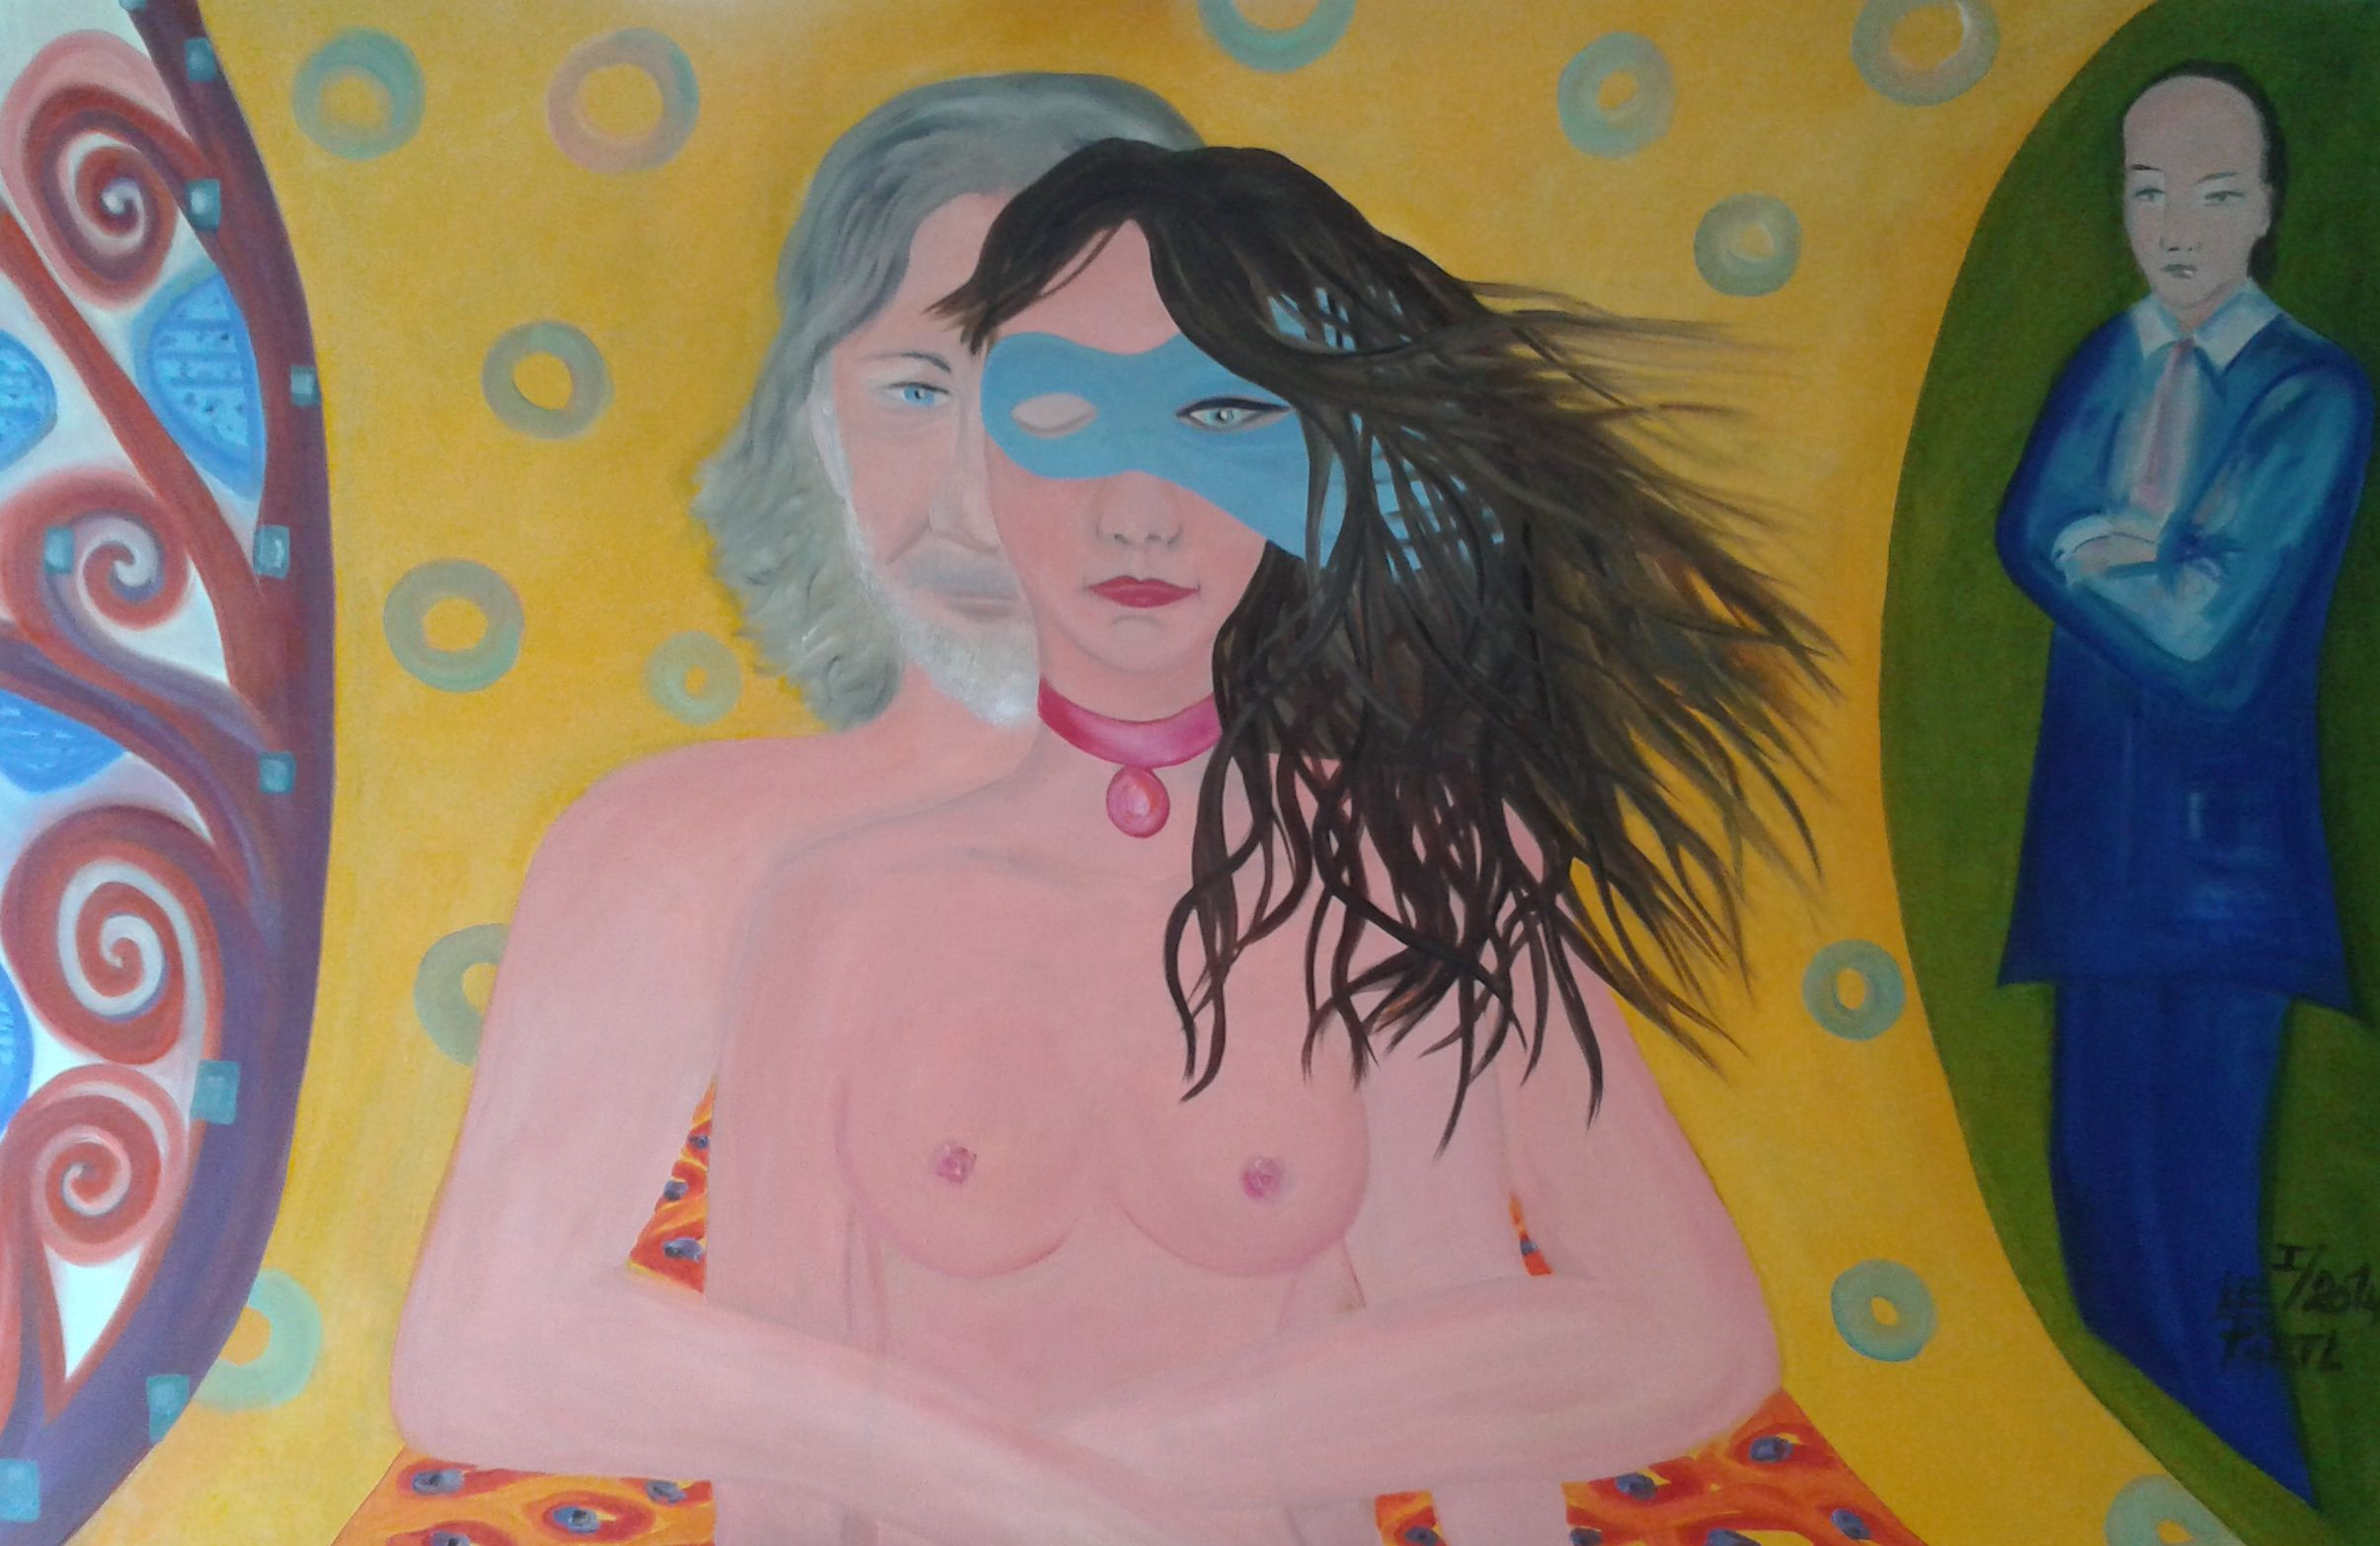 Love test artwork by Lenka Le Partl - art listed for sale on Artplode